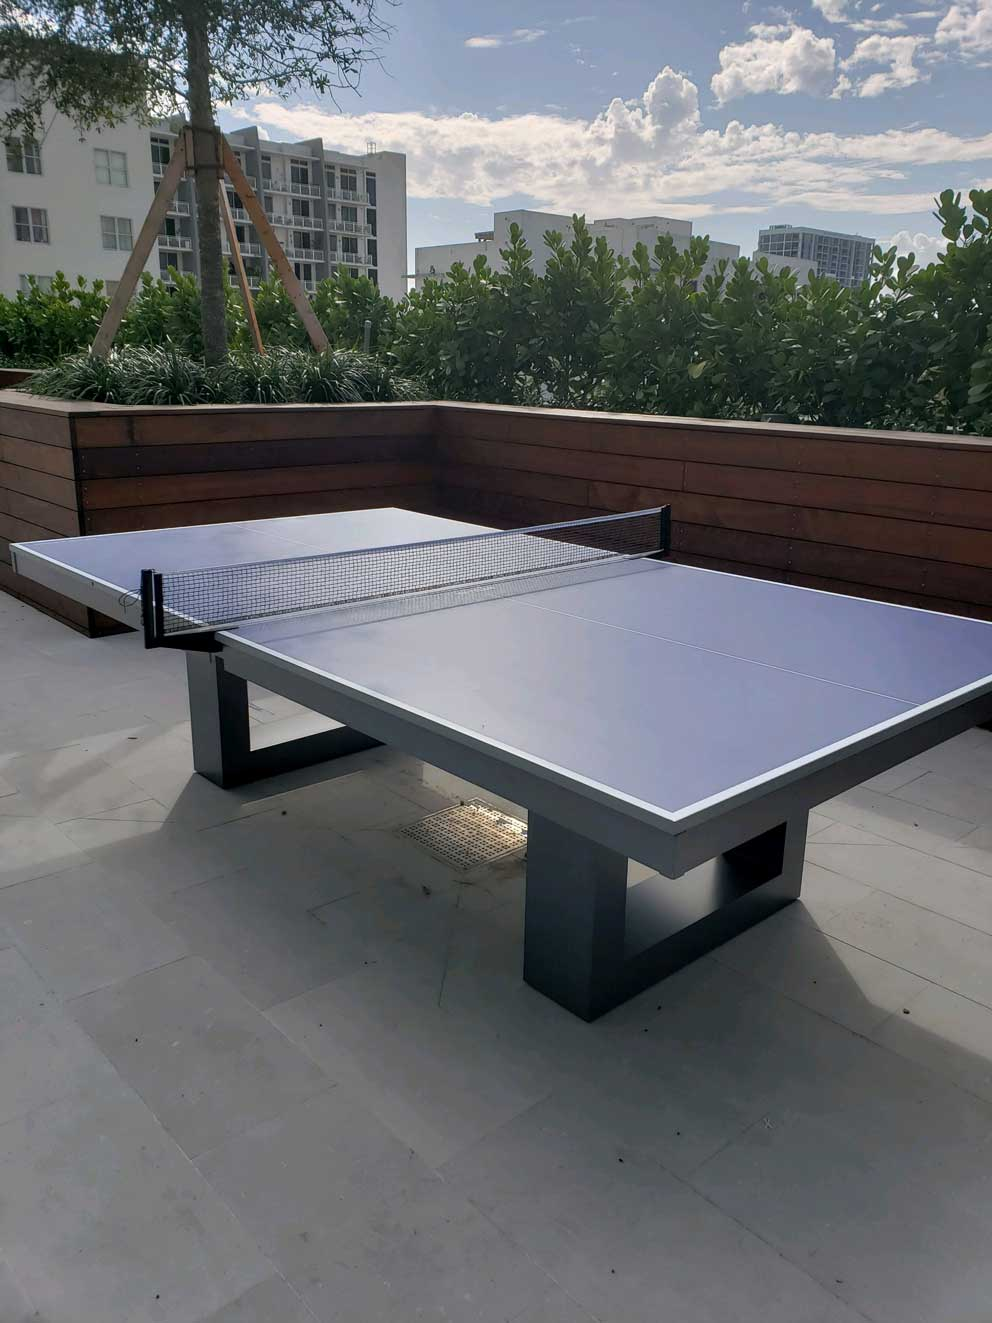 Outdoor Table Tennis Table from R&R Outdoors All Weather Billiards